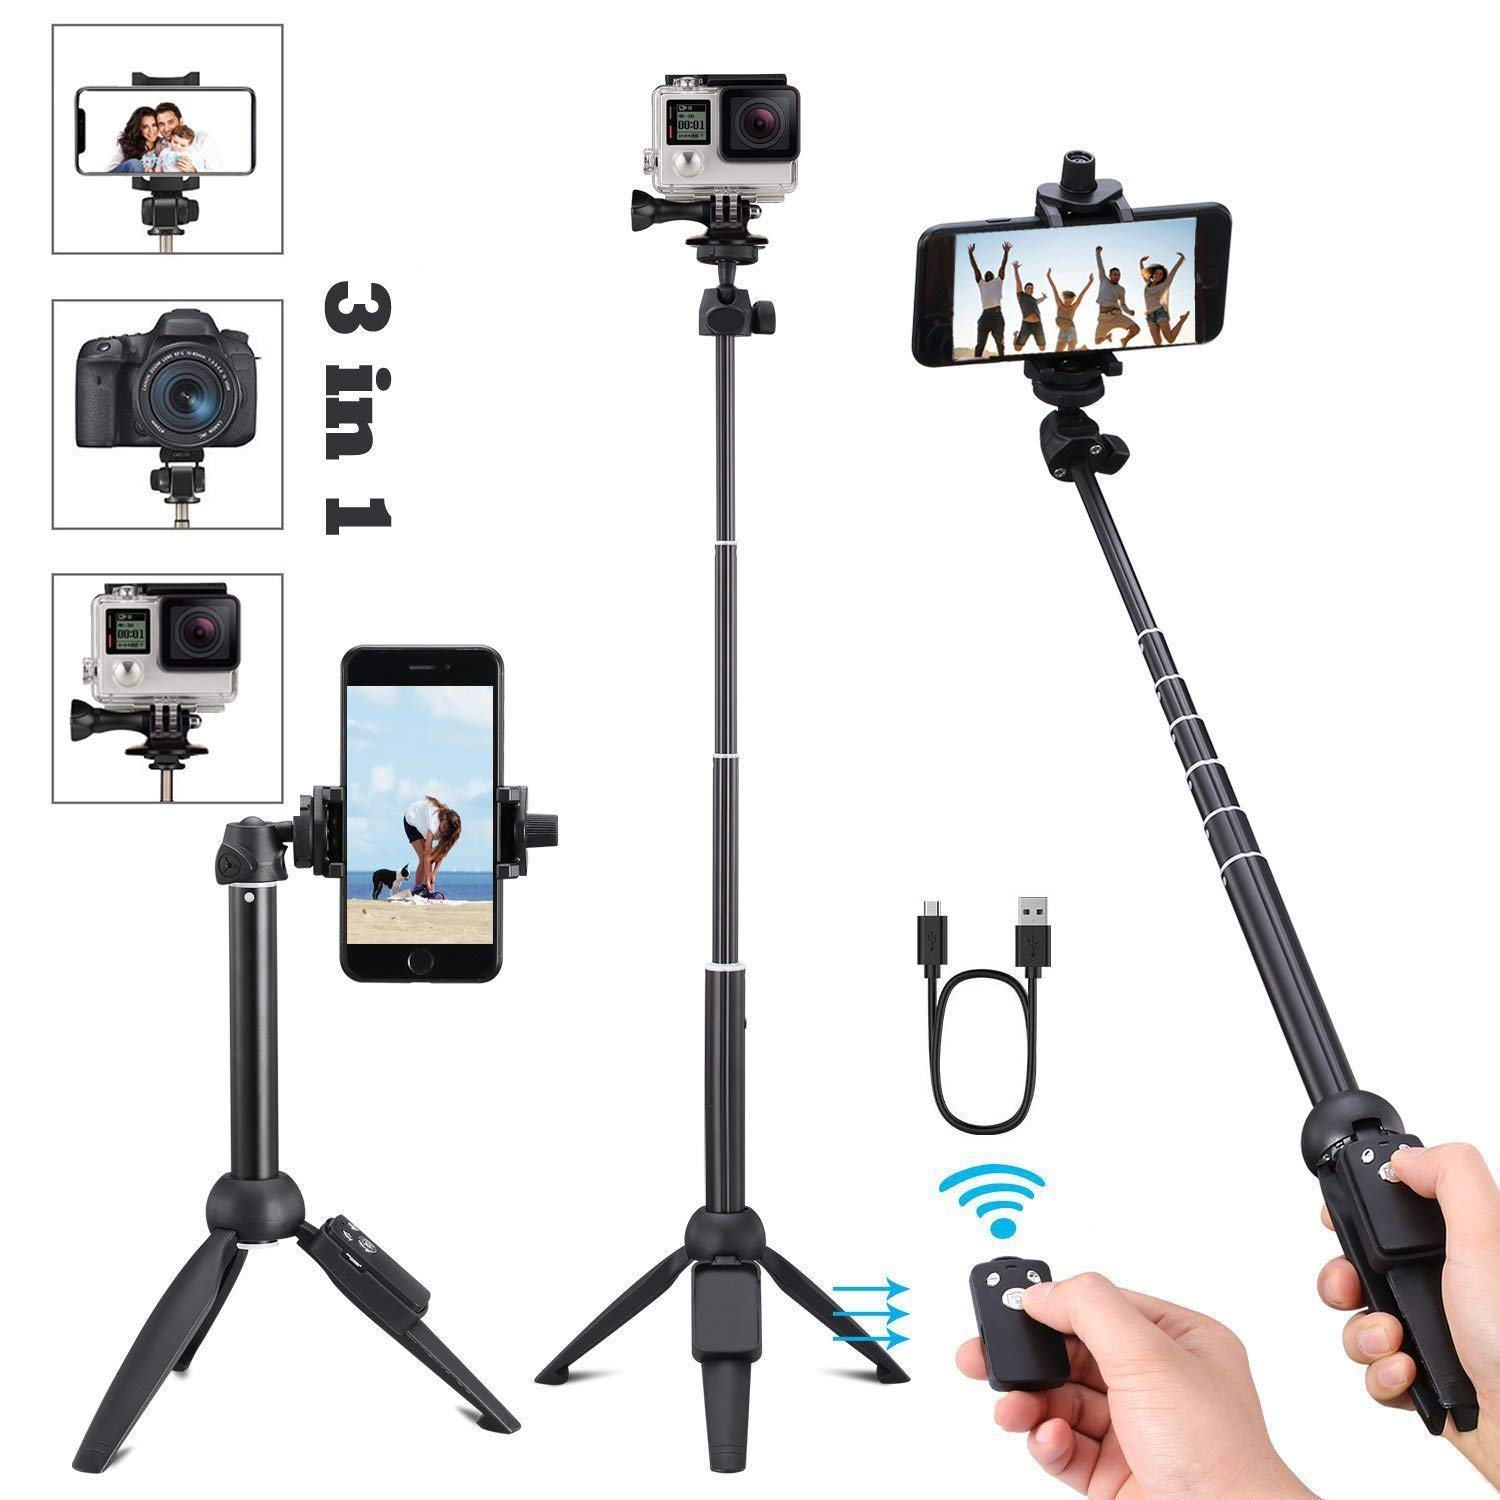 Portable 40 Inch Universal Selfie Stick, Selfie Stick Tripod with Wireless Remote, Extendable Mini Aluminum Alloy Handheld Monopod Phone Tripod Compatible with iPhone Samsung DSLR GoPro by vvtan